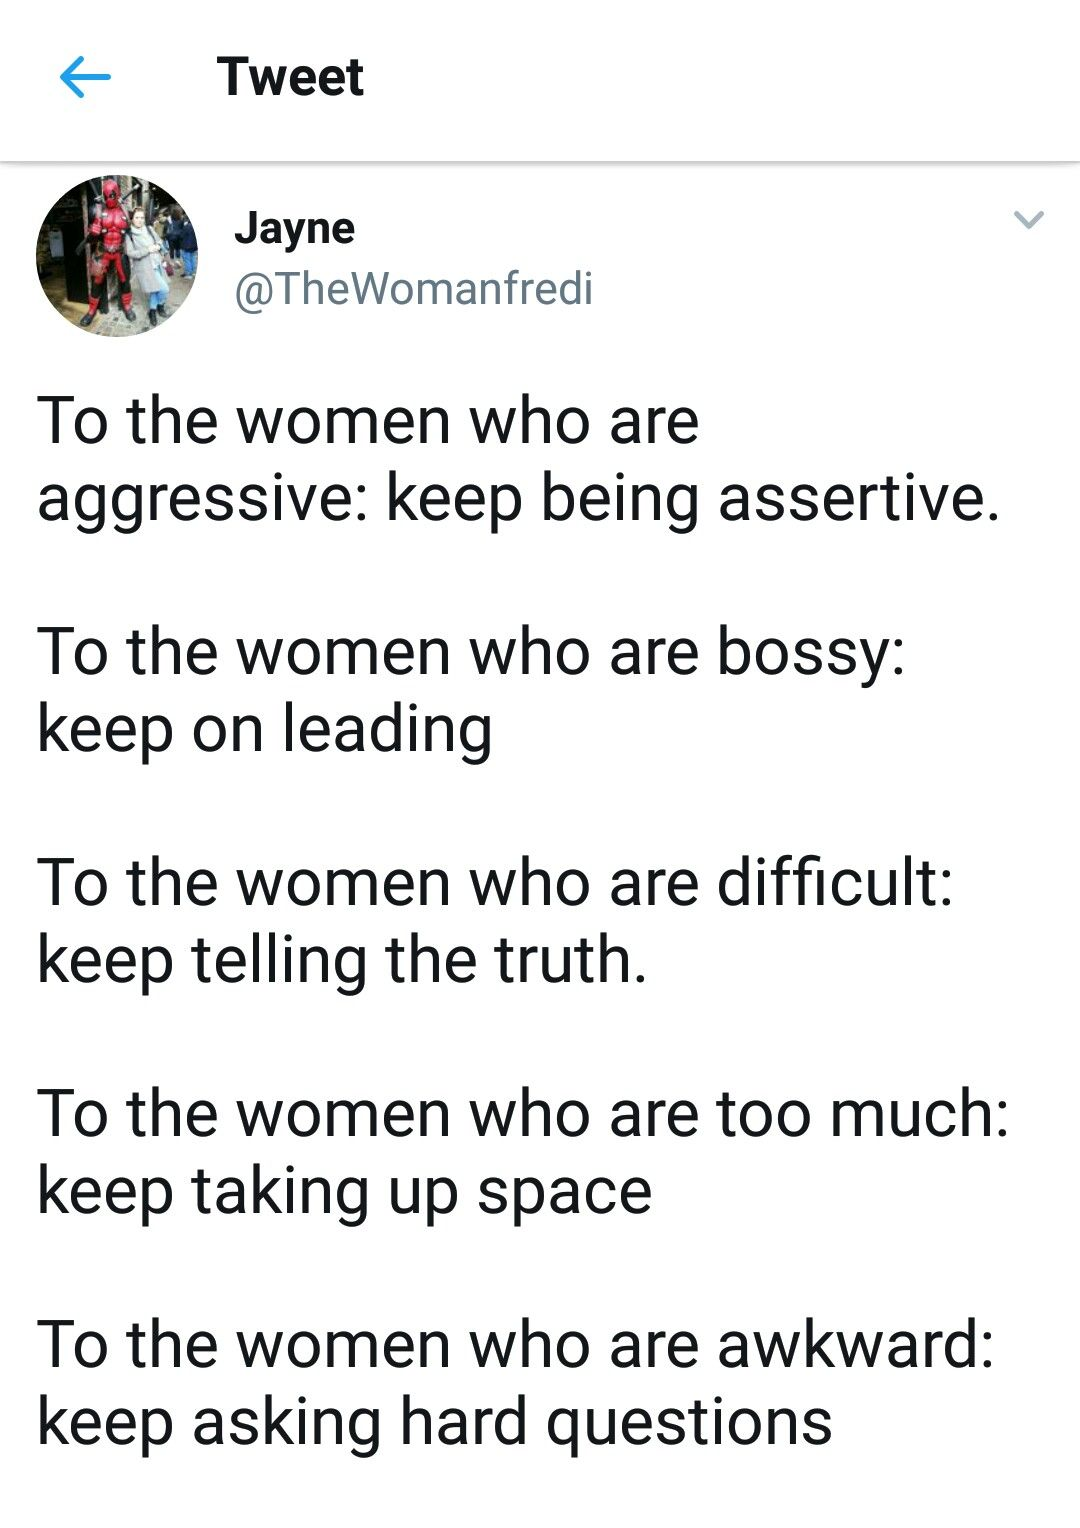 Funny Quotes About Being Bossy : funny, quotes, about, being, bossy, Jayne, Twitter, Assertive, Quote,, Funny, Women, Quotes,, Bossy, Quotes